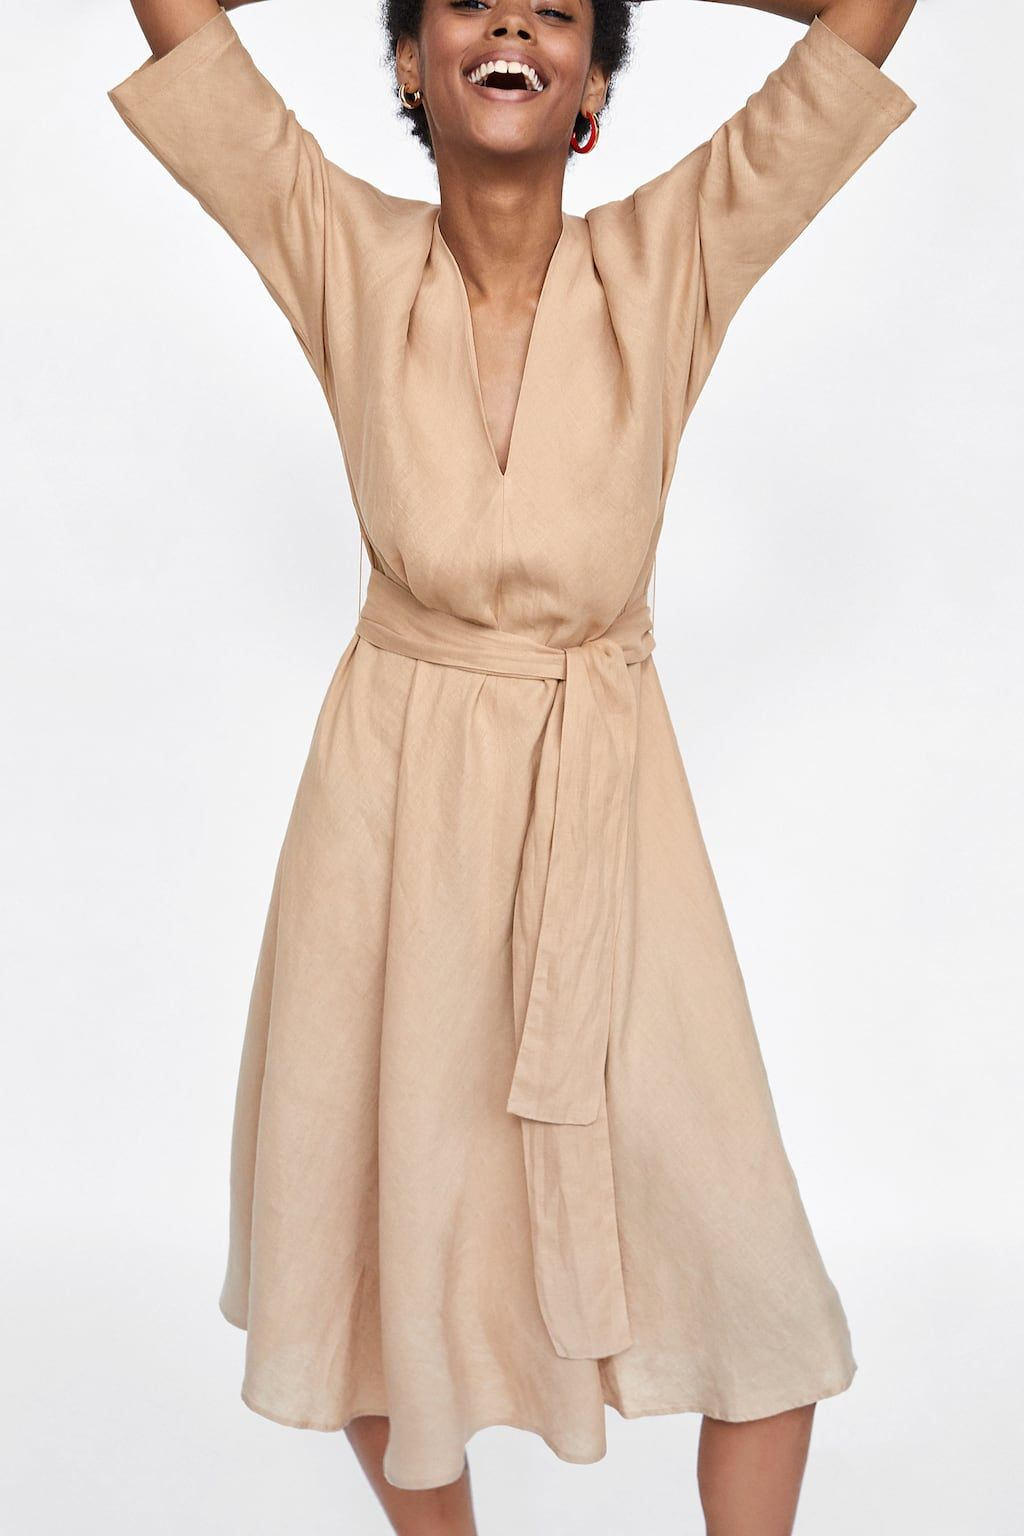 920fca865c55 Image 2 of LINEN DRESS WITH BELT from Zara